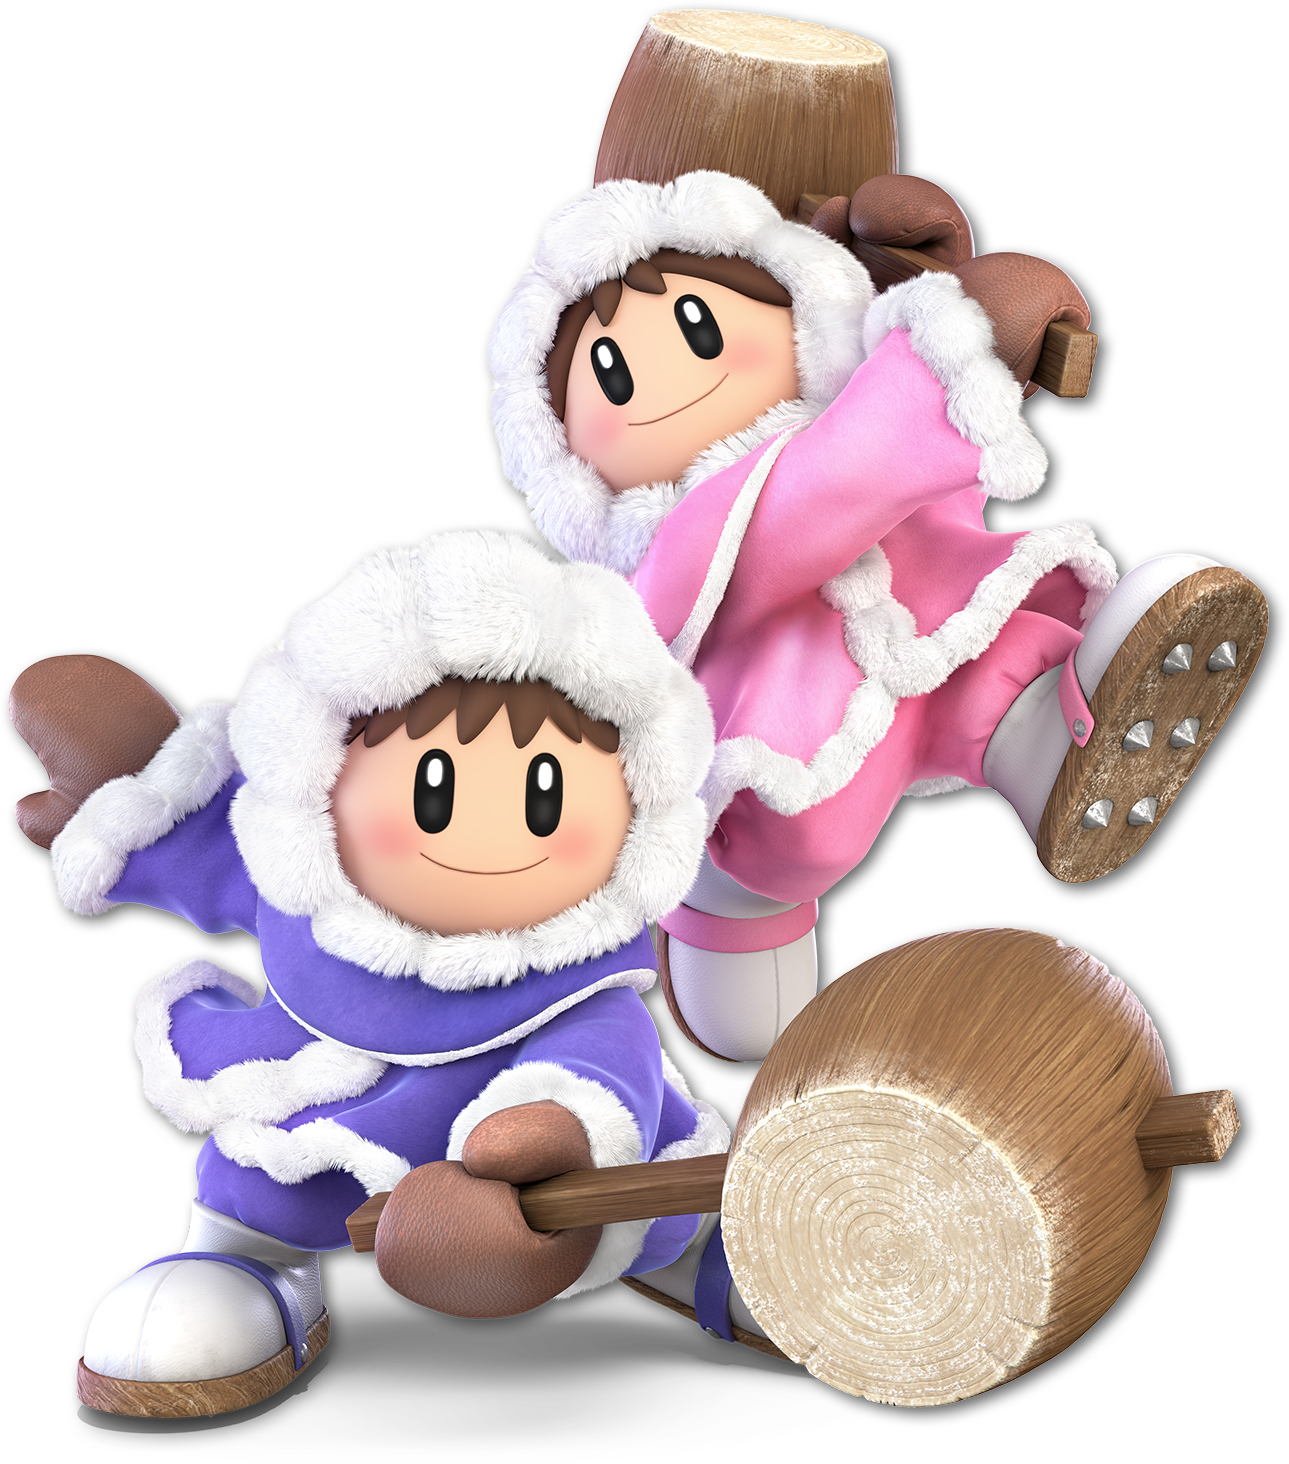 Ice Climbers In Super Smash Bros Ultimate Smash Bros Super Smash Bros Characters Super Smash Bros